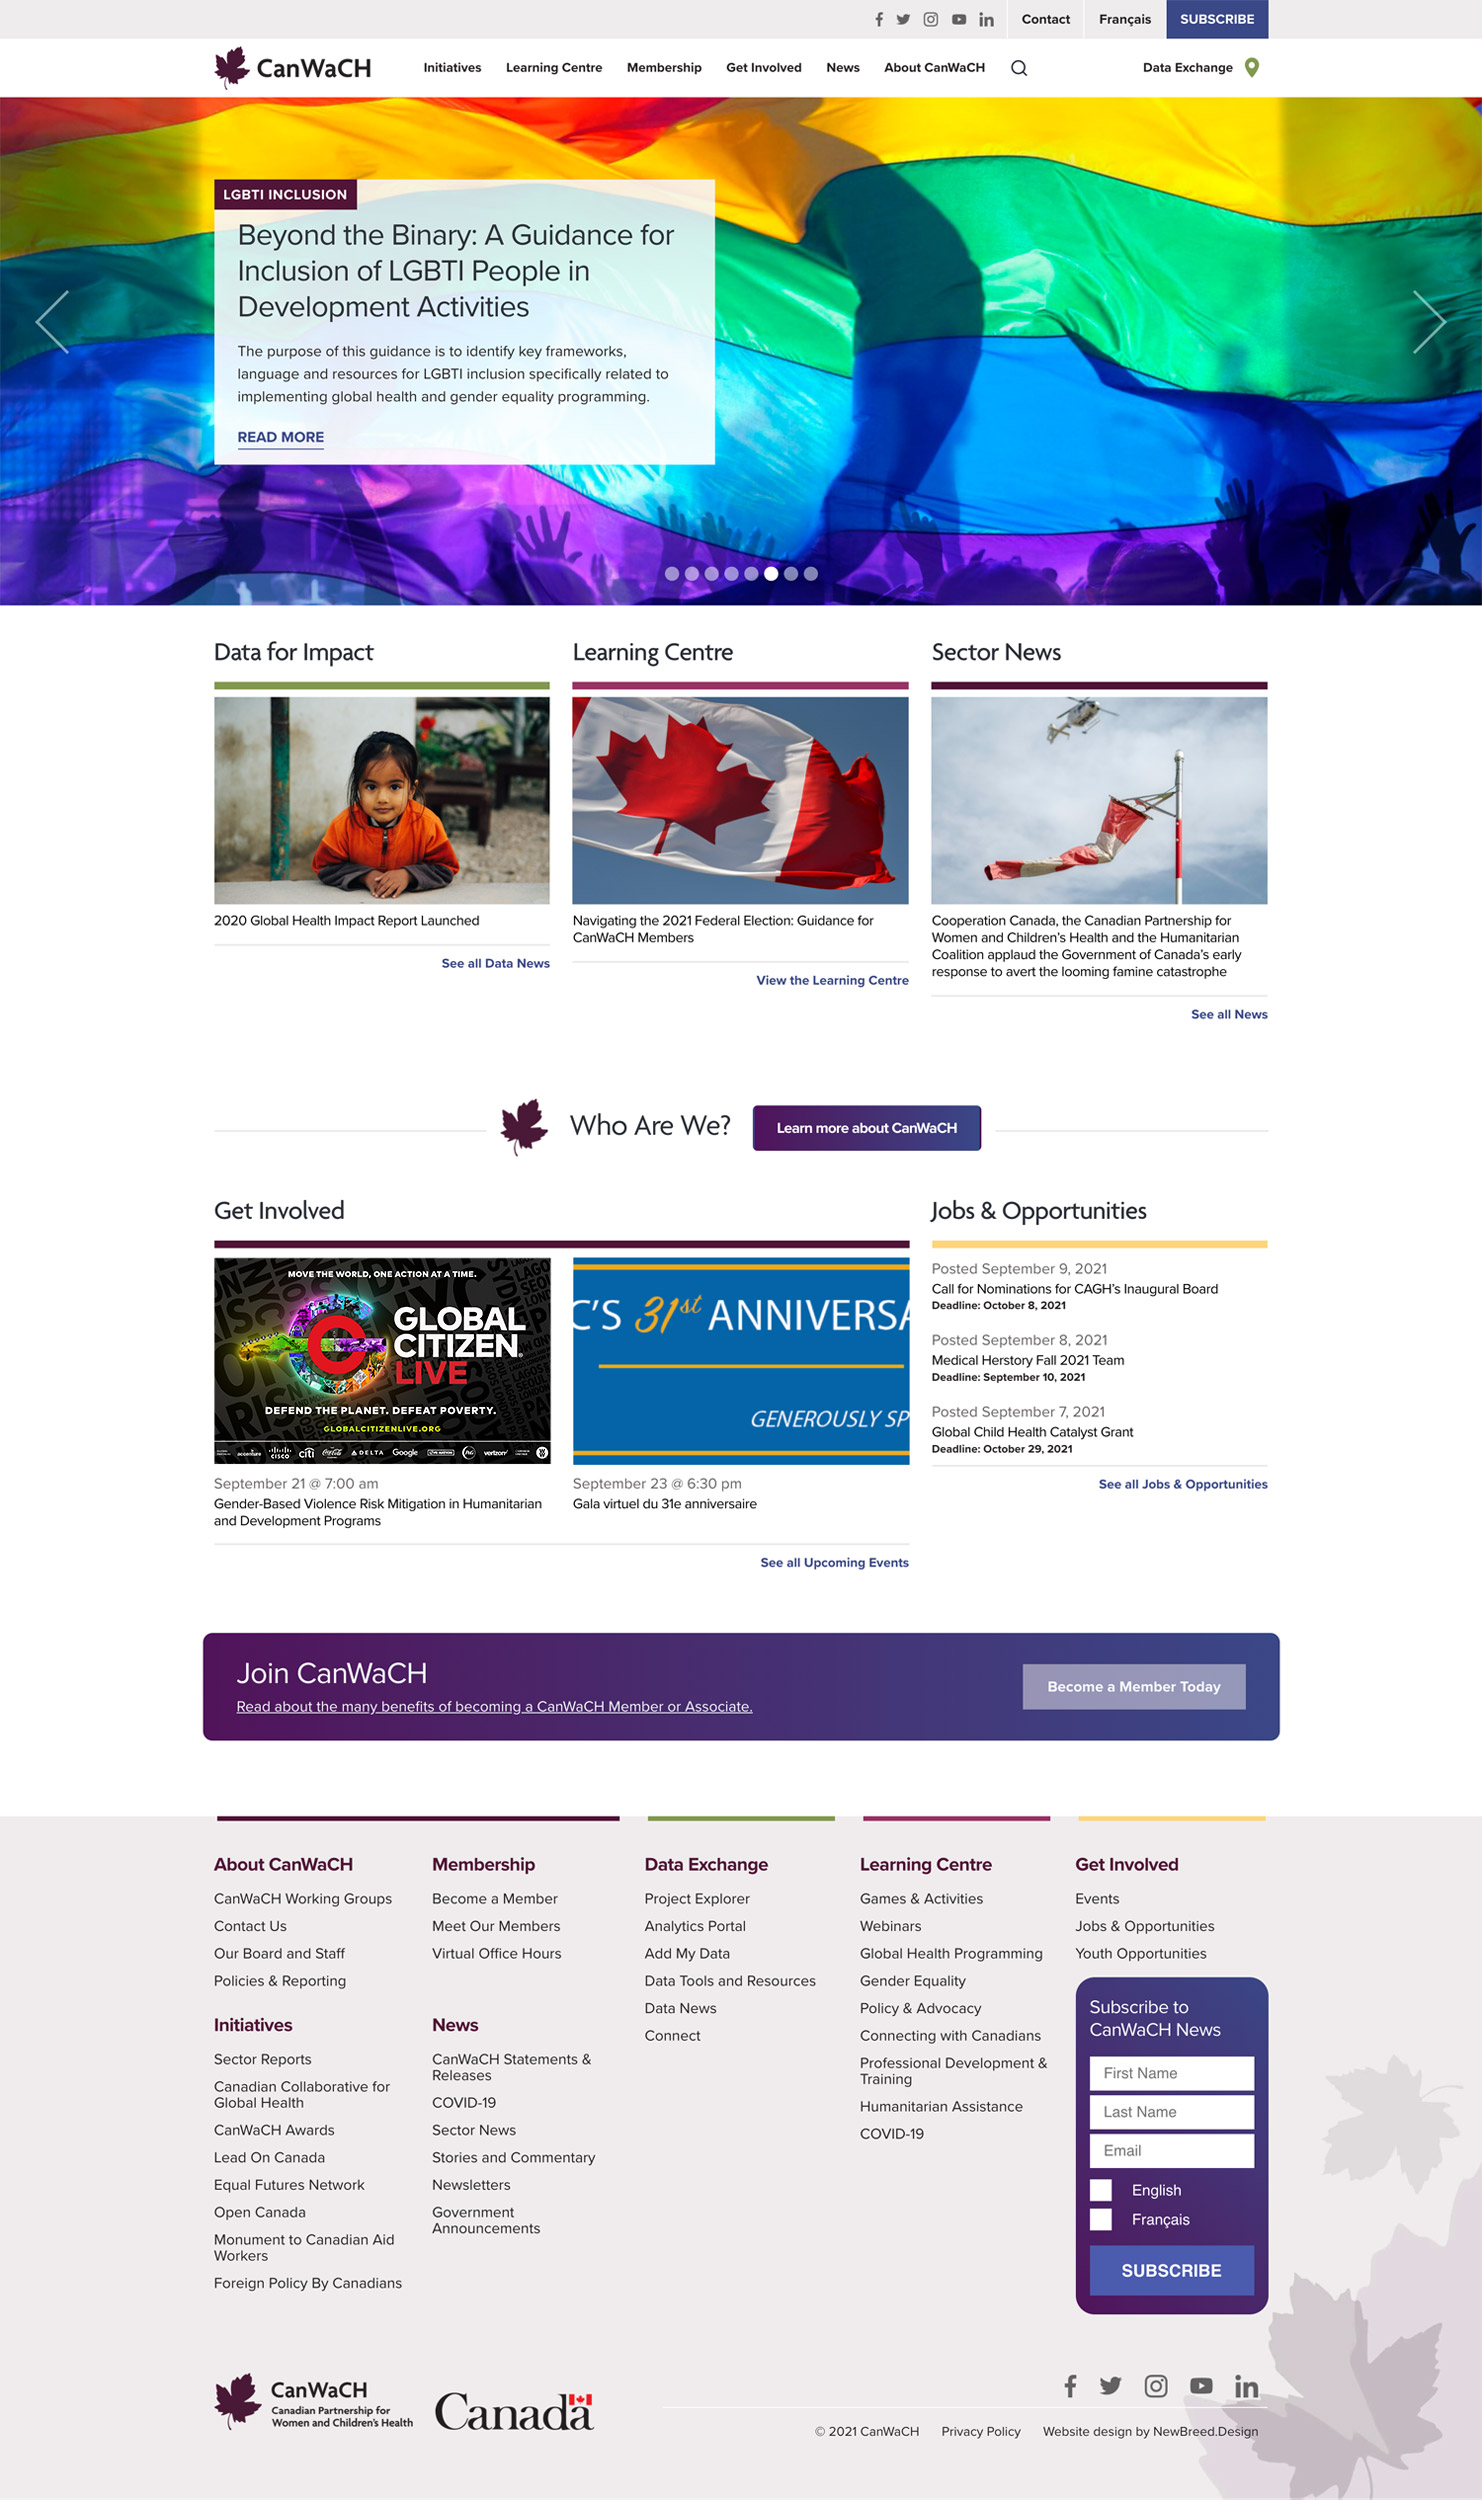 CanWaCH.ca Home page